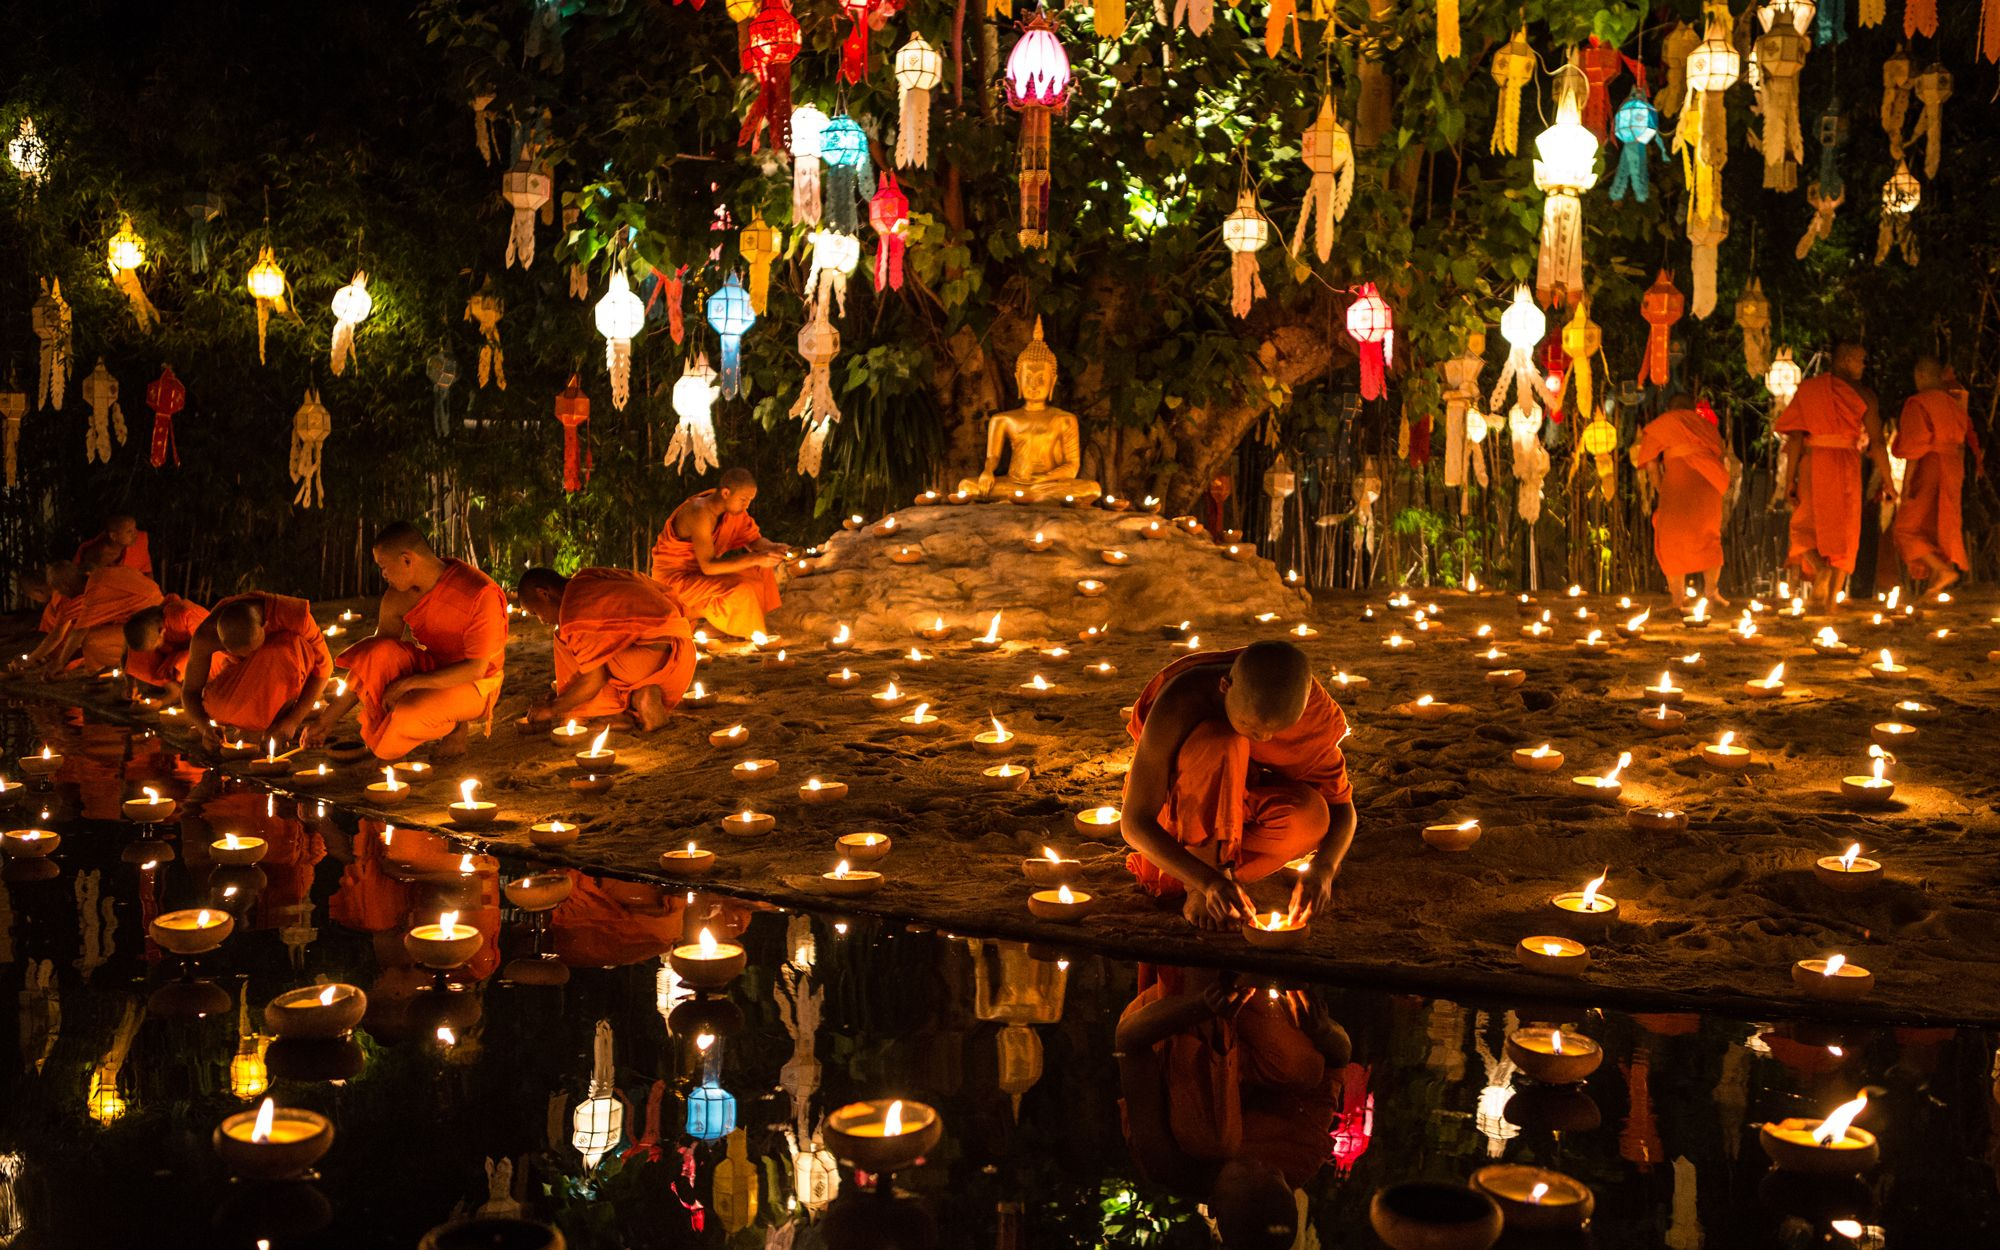 """Loi Krathong, Thailand & Laos: Loi Krathong means """"to float a basket"""" and in Thailand, along with parts of Laos, this festival involves sending decorated baskets (known as krathongs) down river and decorating the home with candles."""